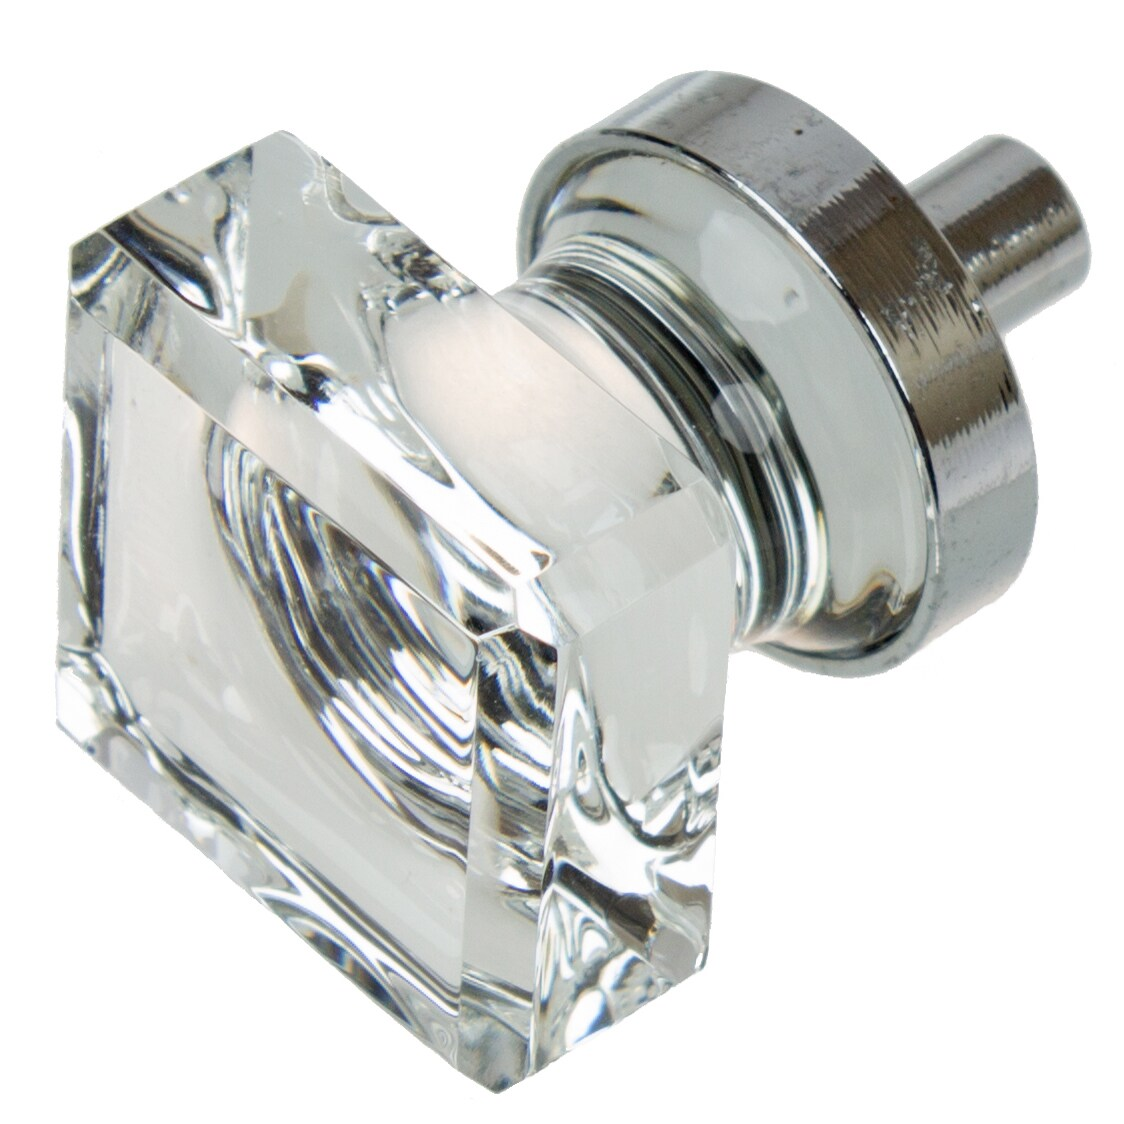 Charmant Shop GlideRite 1 Inch Polished Chrome Square Glass Cabinet Knobs (Pack Of  10 Or 25)   Free Shipping On Orders Over $45   Overstock.com   11468064